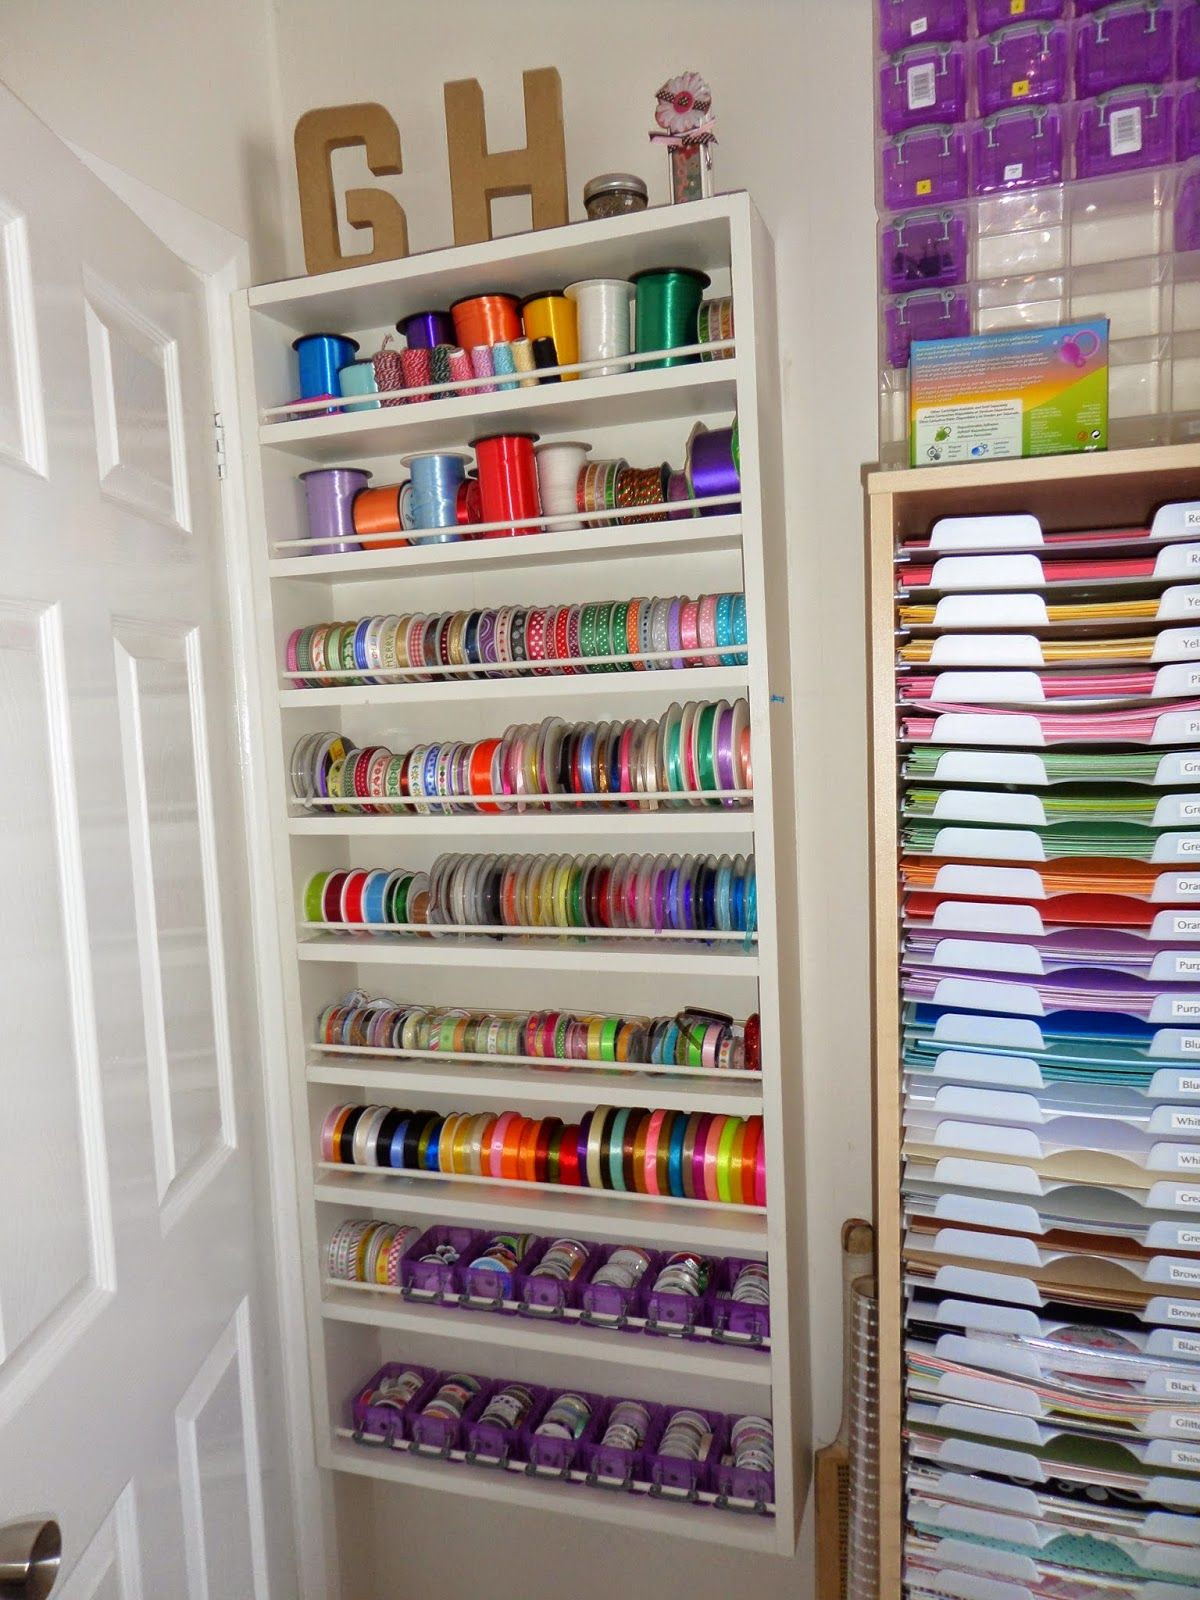 Storage Craft Home Ideas Wall Storage For Kitchen Craft Room Craft Storage Wall Storage Diy Craft Room